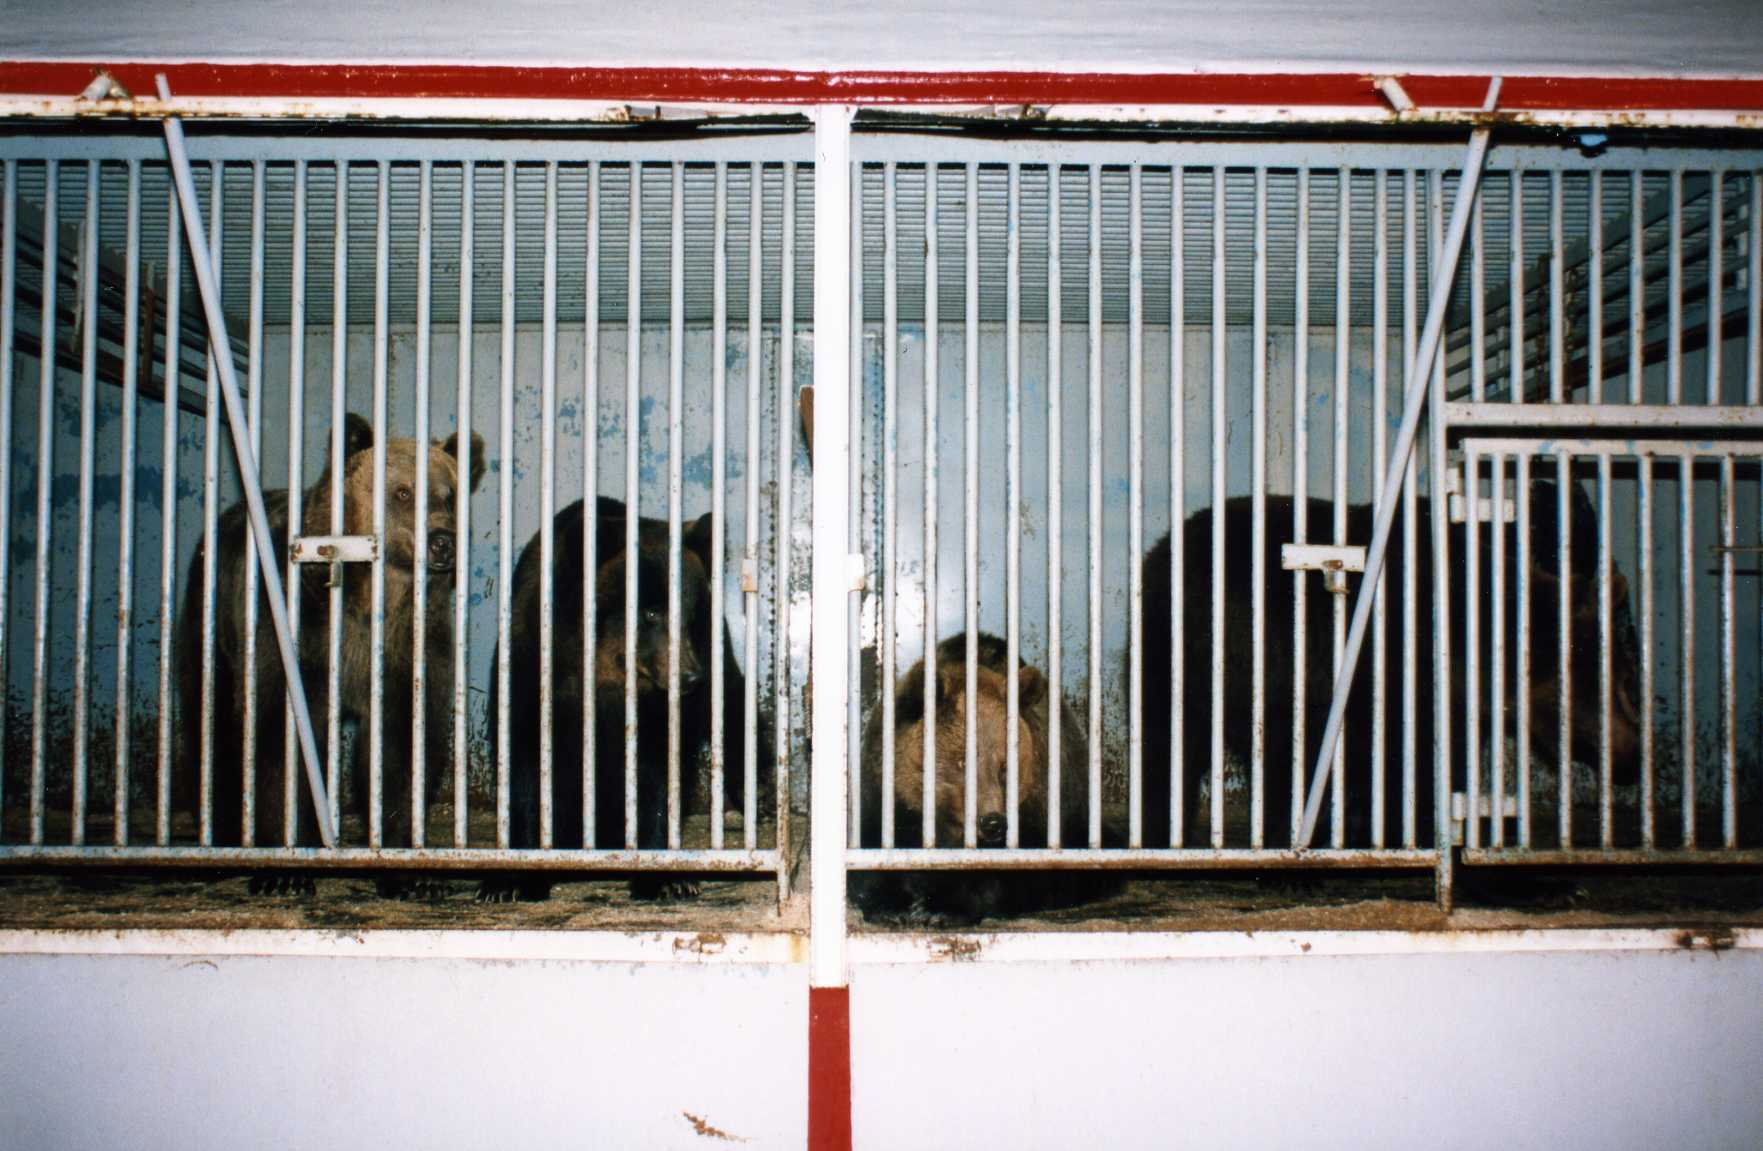 Circus bears in cages